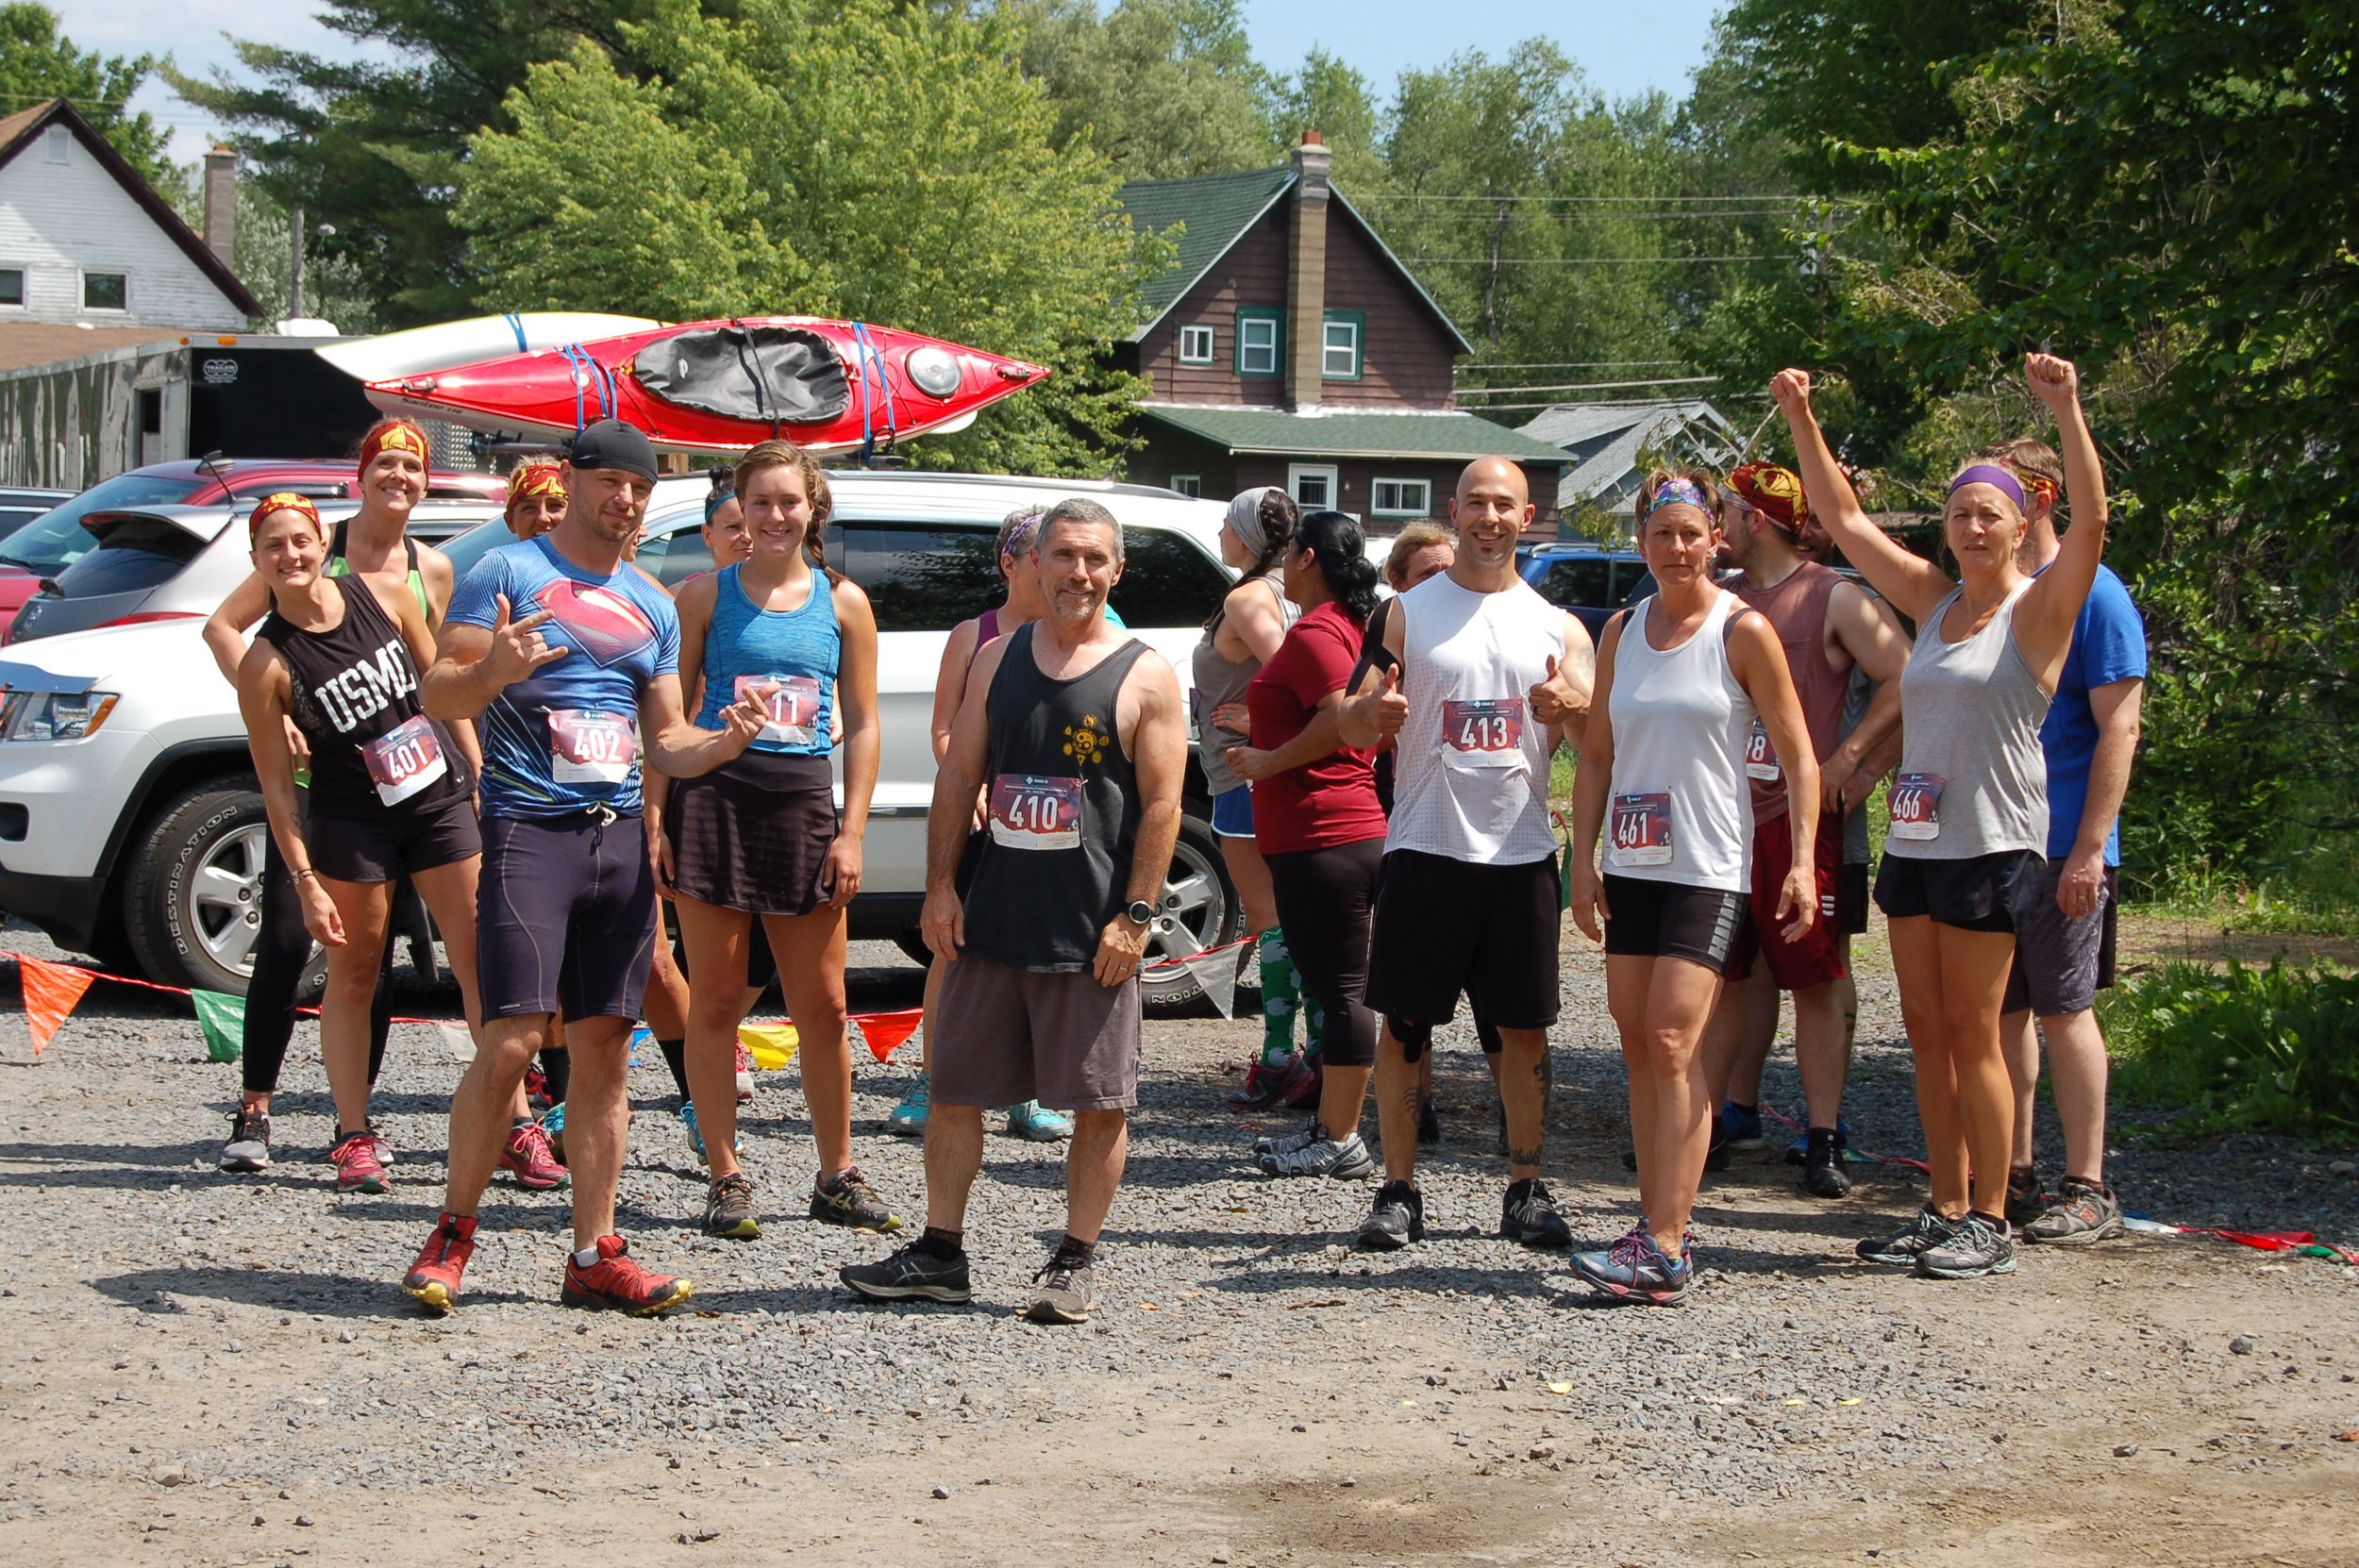 Amy Ambrose, Randy Beckwith, Sarah Ford, Rich Edwards, Stephen Galetta, Gayle Roy-Collin, Elizabeth Vicencio and other runners of the race's first wave wait for their cue to start which was at noon sharp.